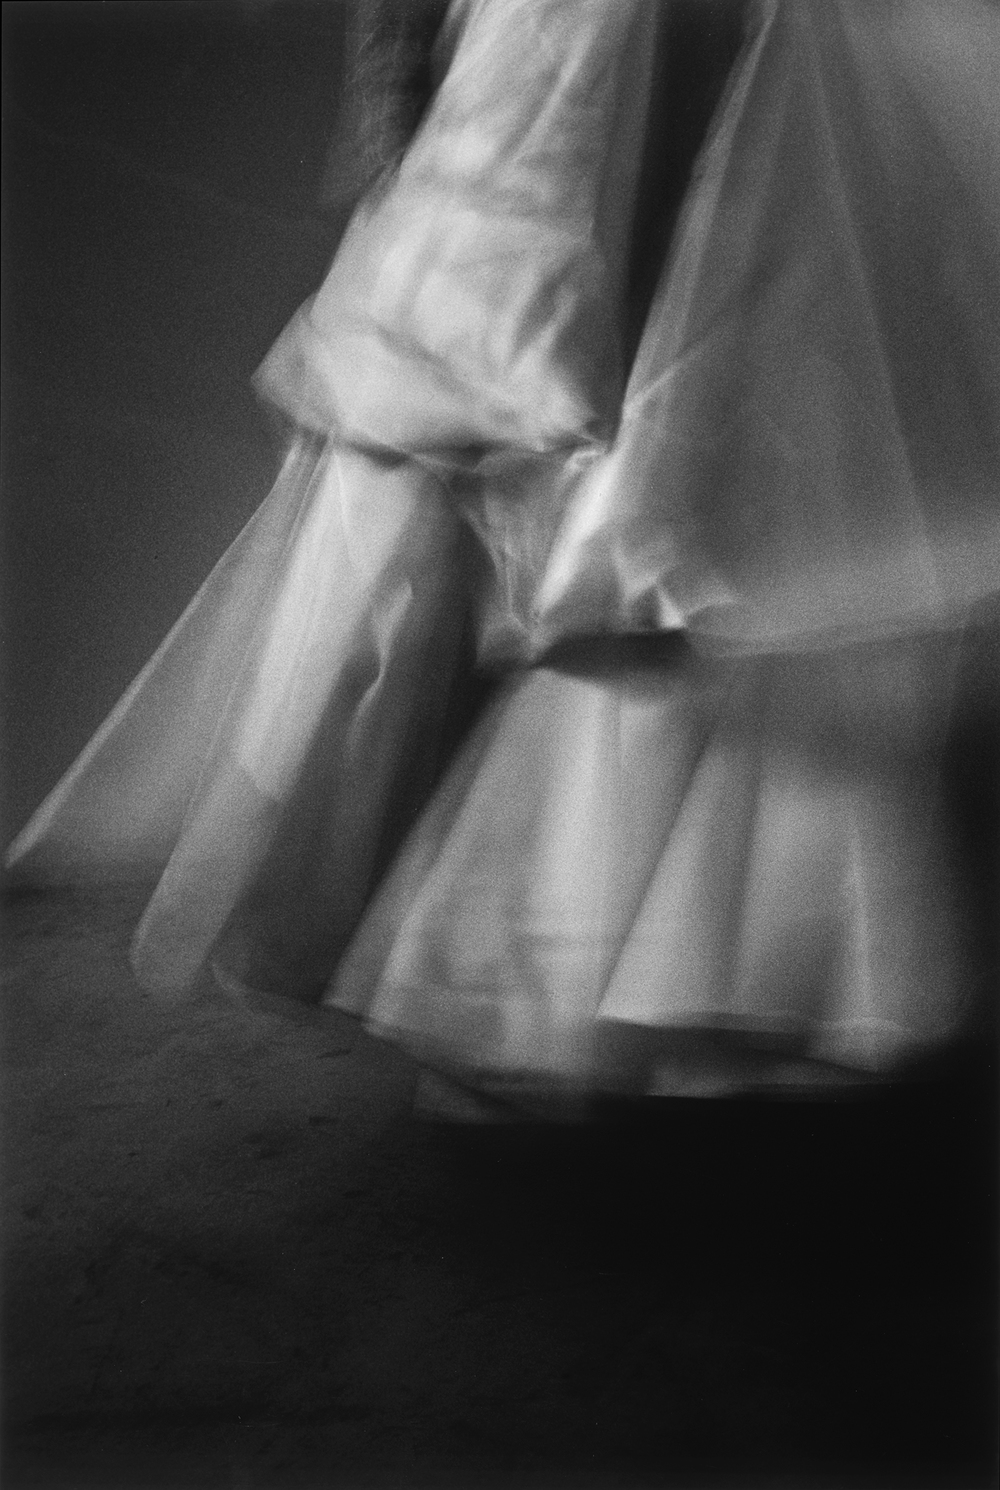 無題 #1038(打摺裙,婚紗系列)Untitled #1038 (Drapery Dress, Bridal Series),2001